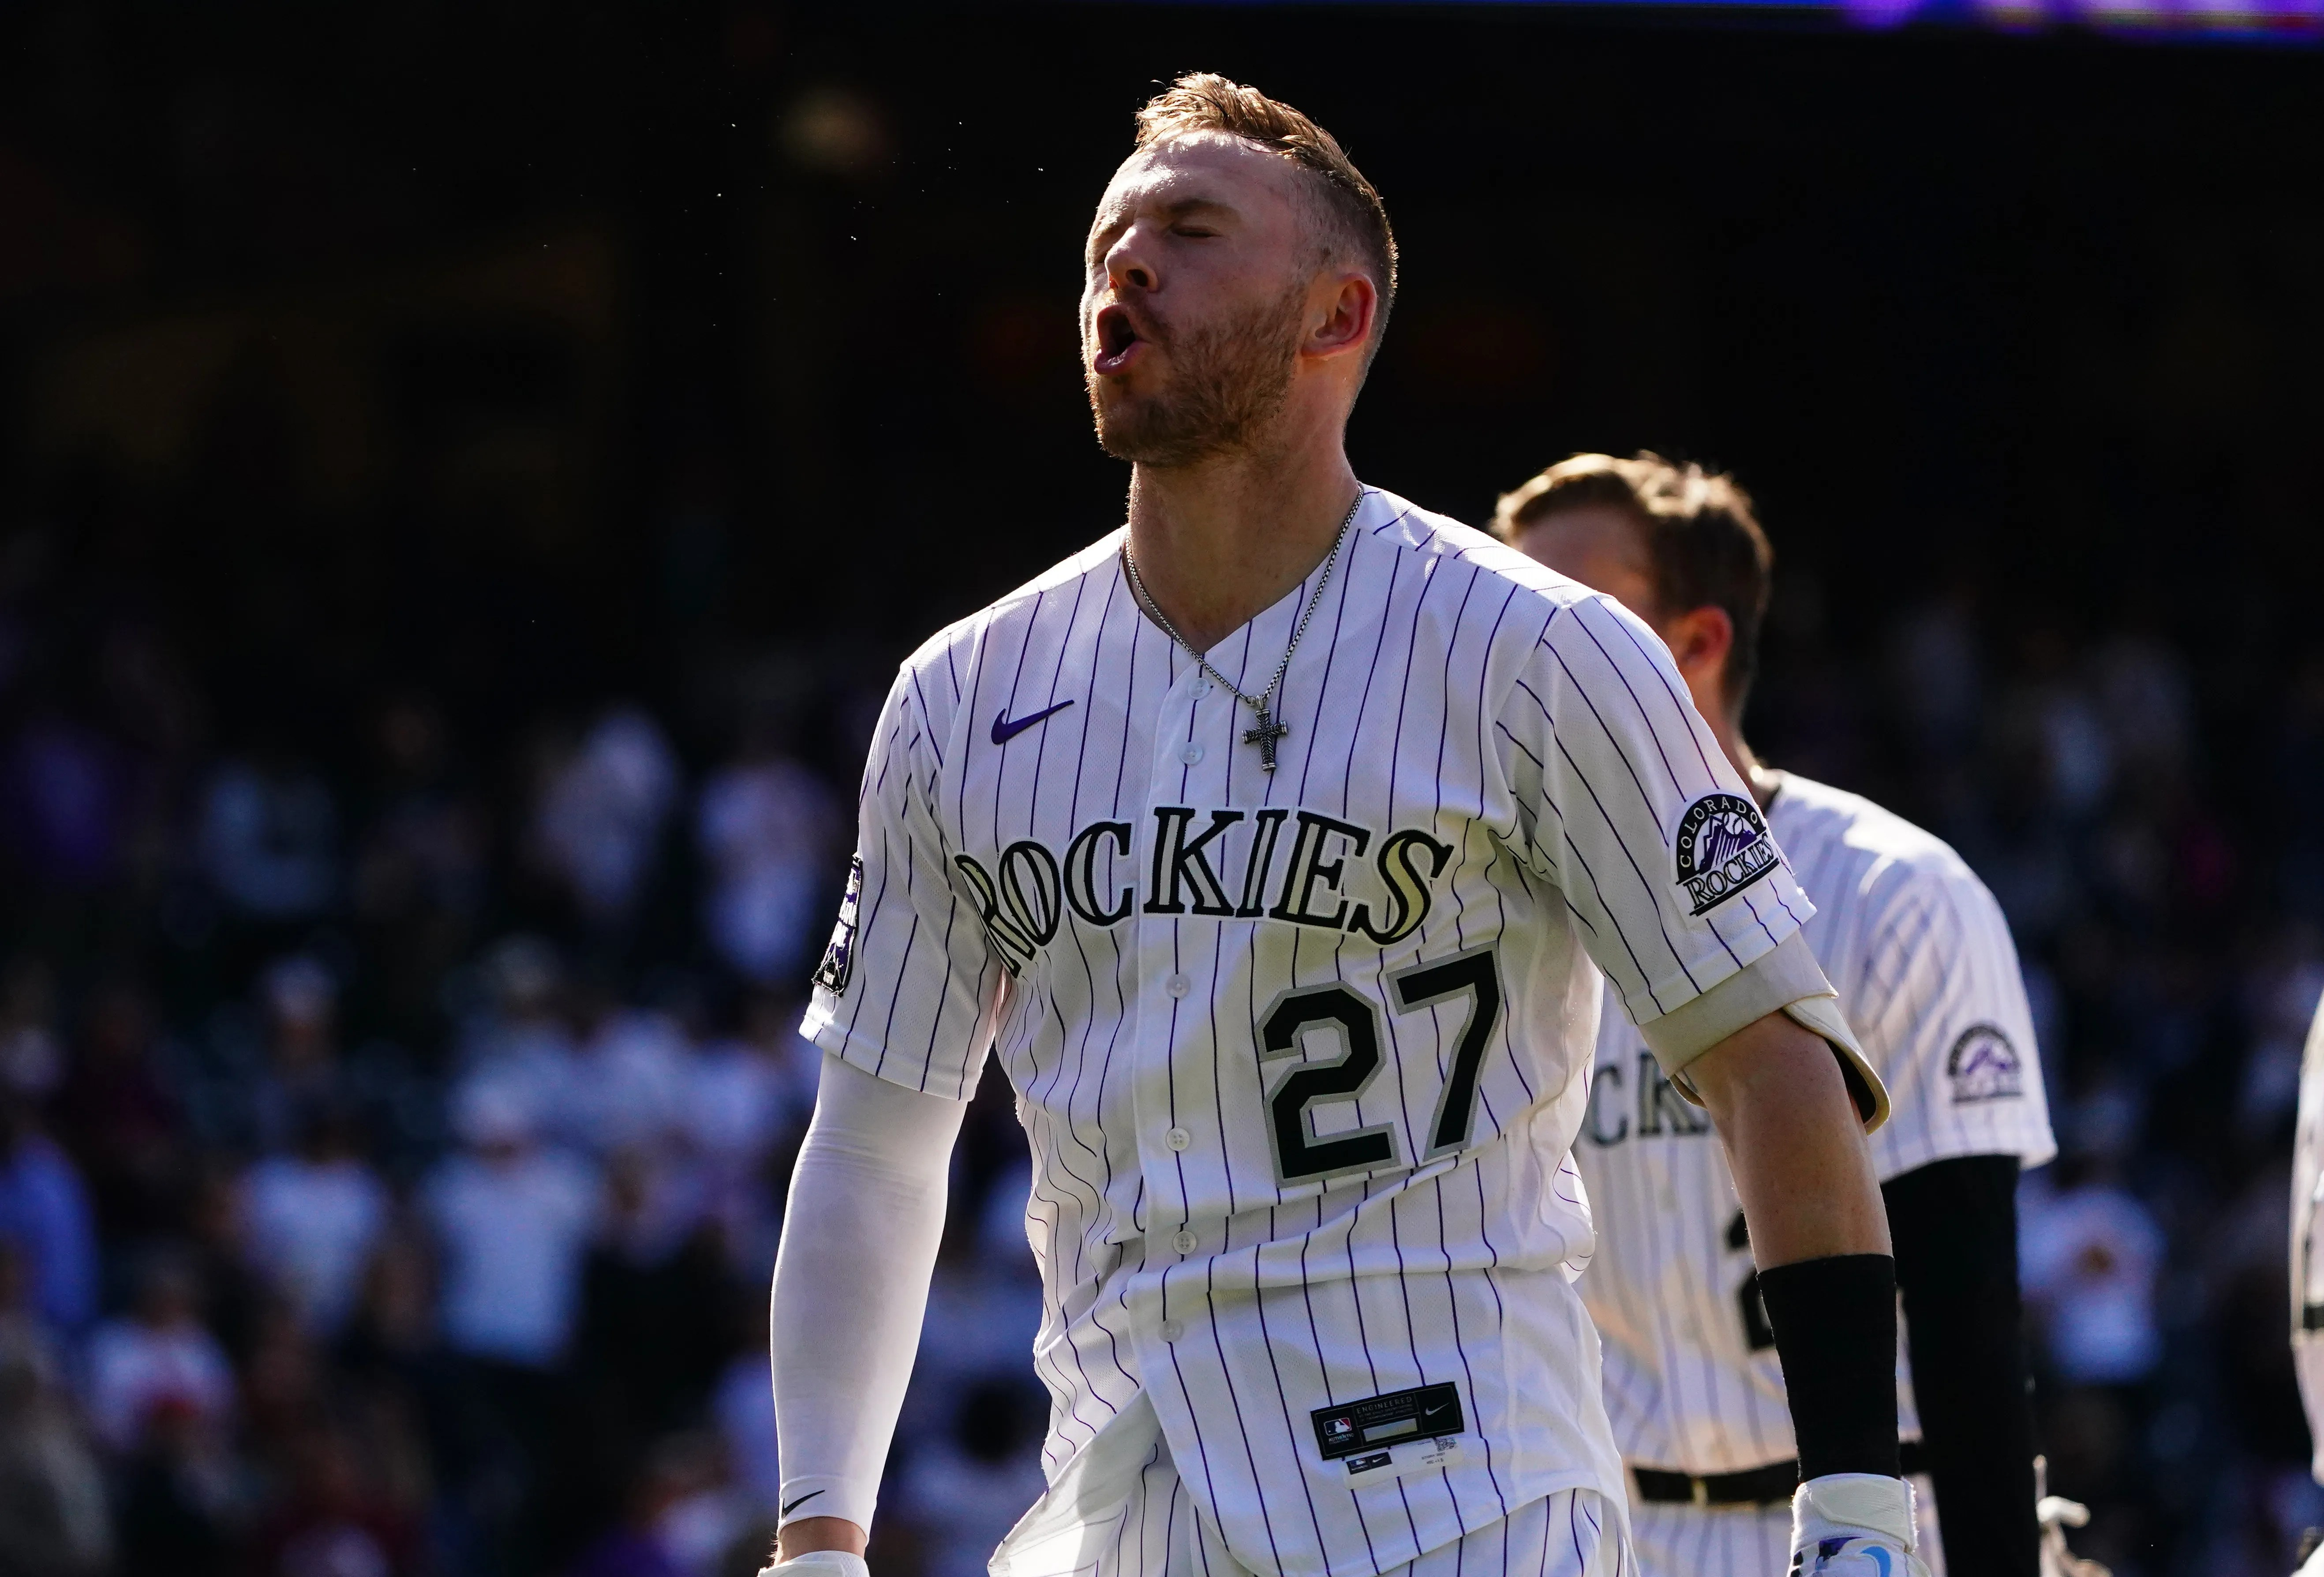 Trevor Story could earn a big salary when he becomes a free agent after the season.